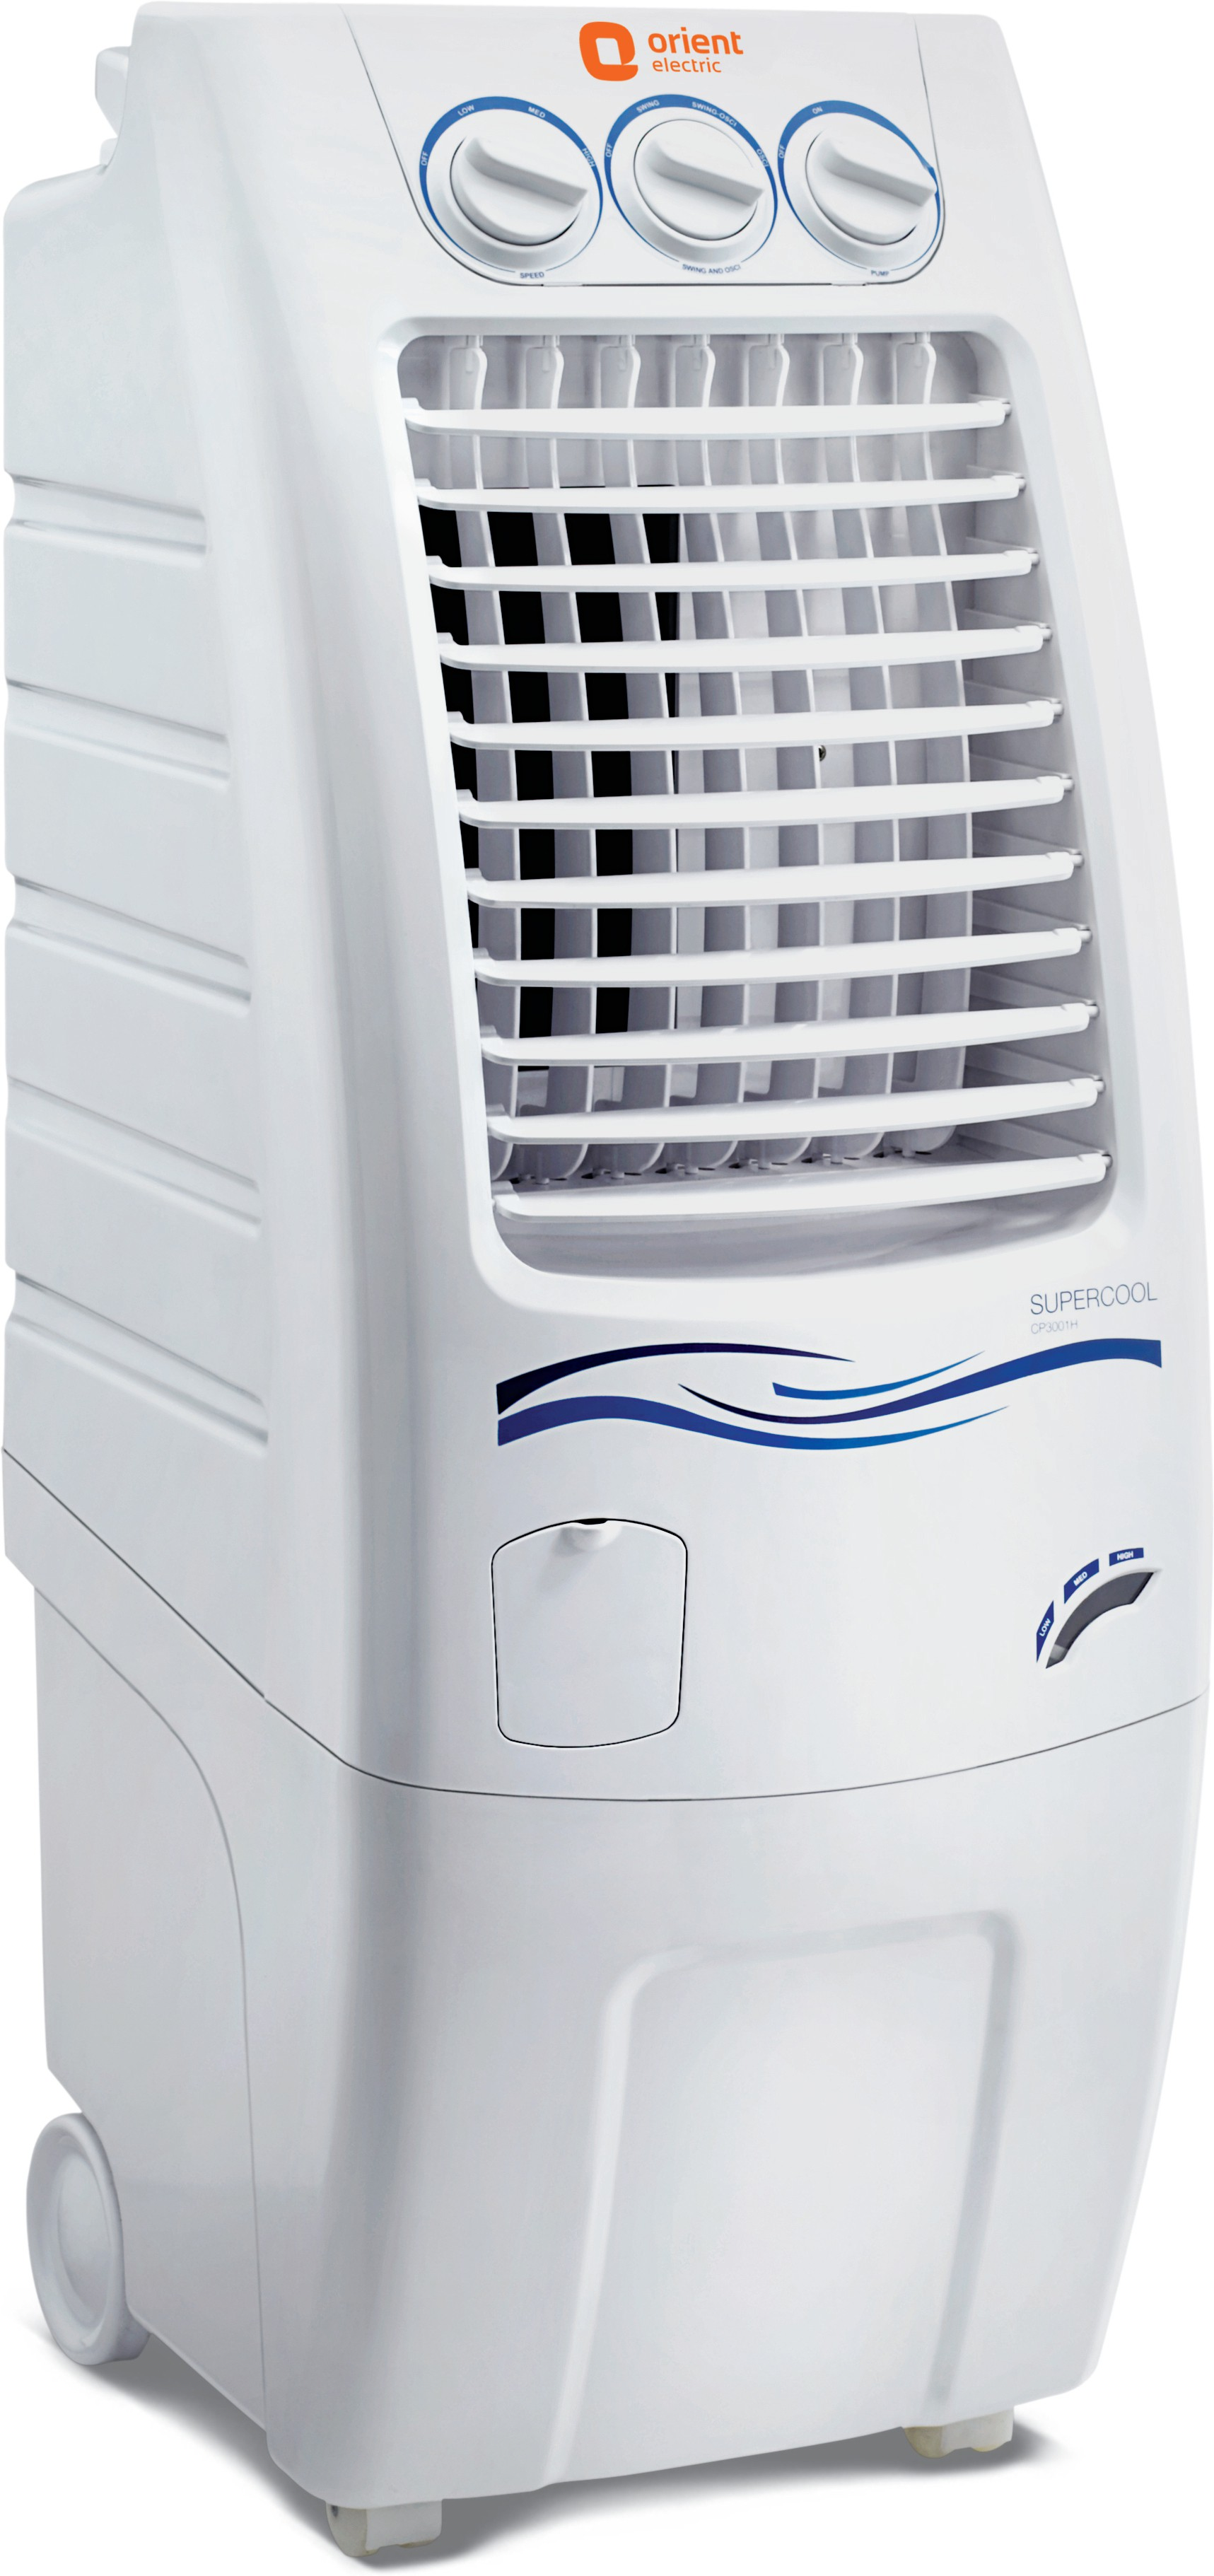 Orient Electric Supercool - CP3001H Room Air Cooler Image